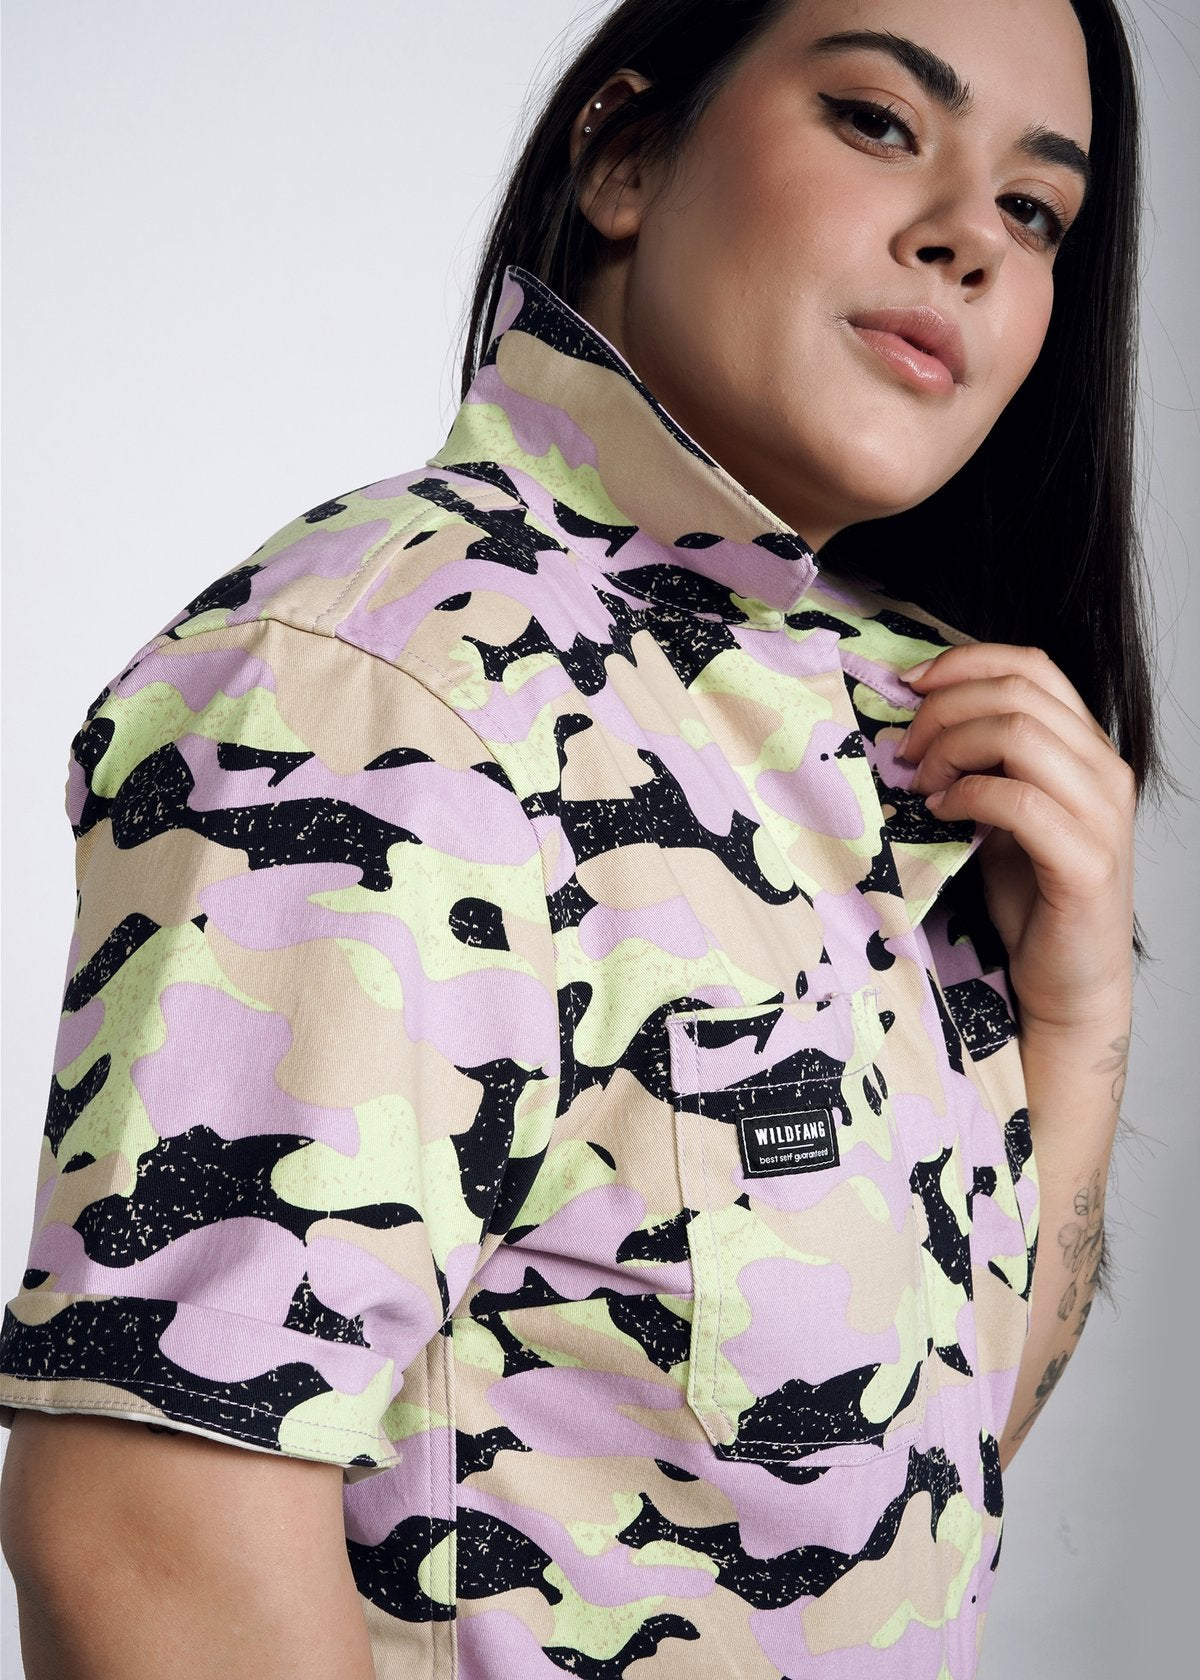 Brunette model in lavender, light green, and black camo printed short sleeve coveralls with popped collar